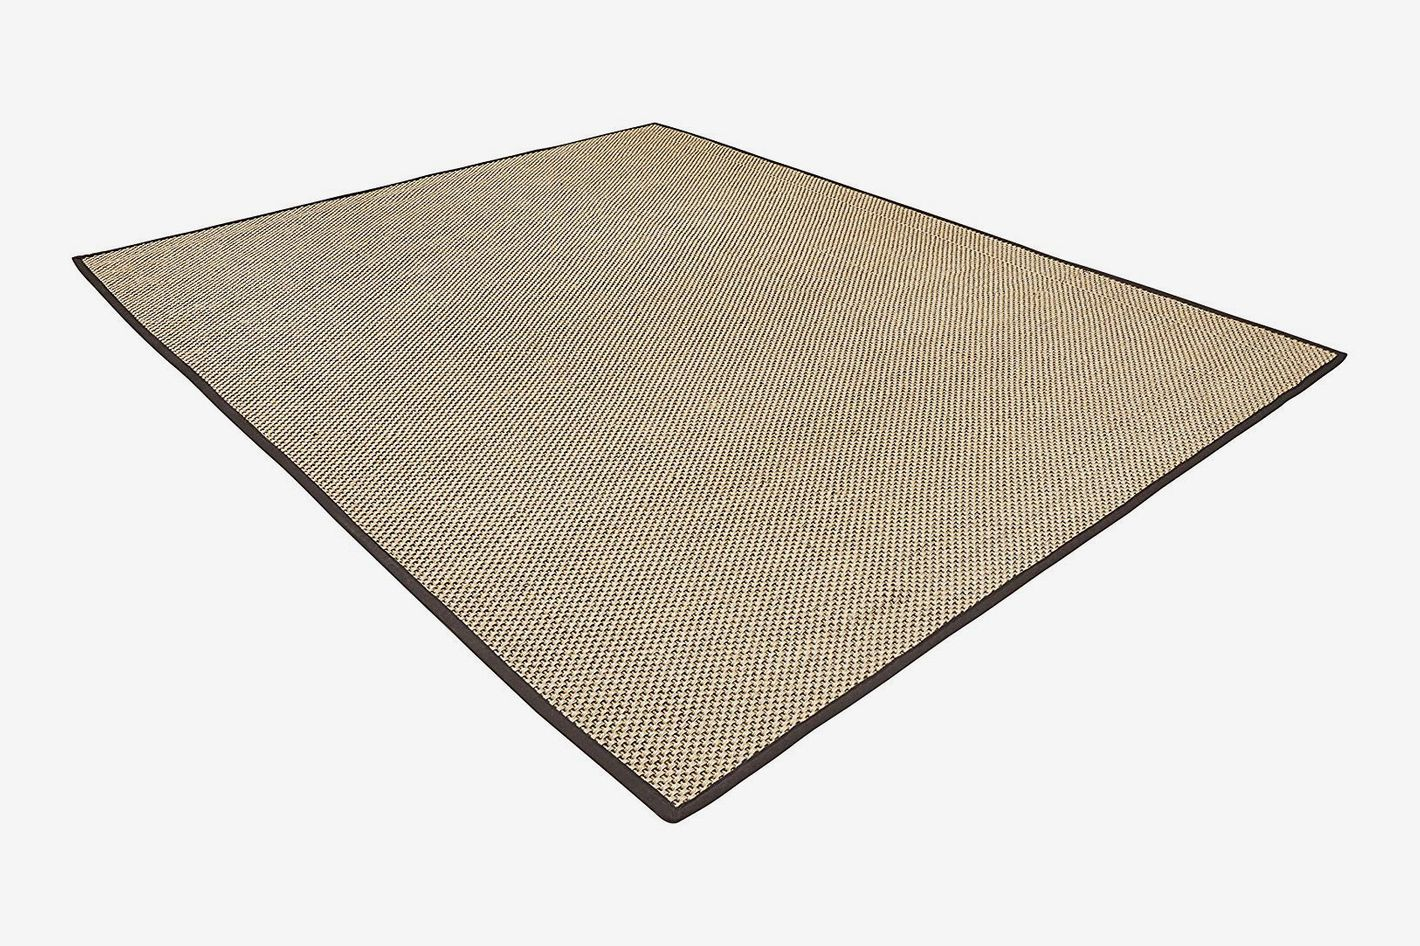 Rivet Woven Bordered Sisal Rug, 5' x 7', Charcoal